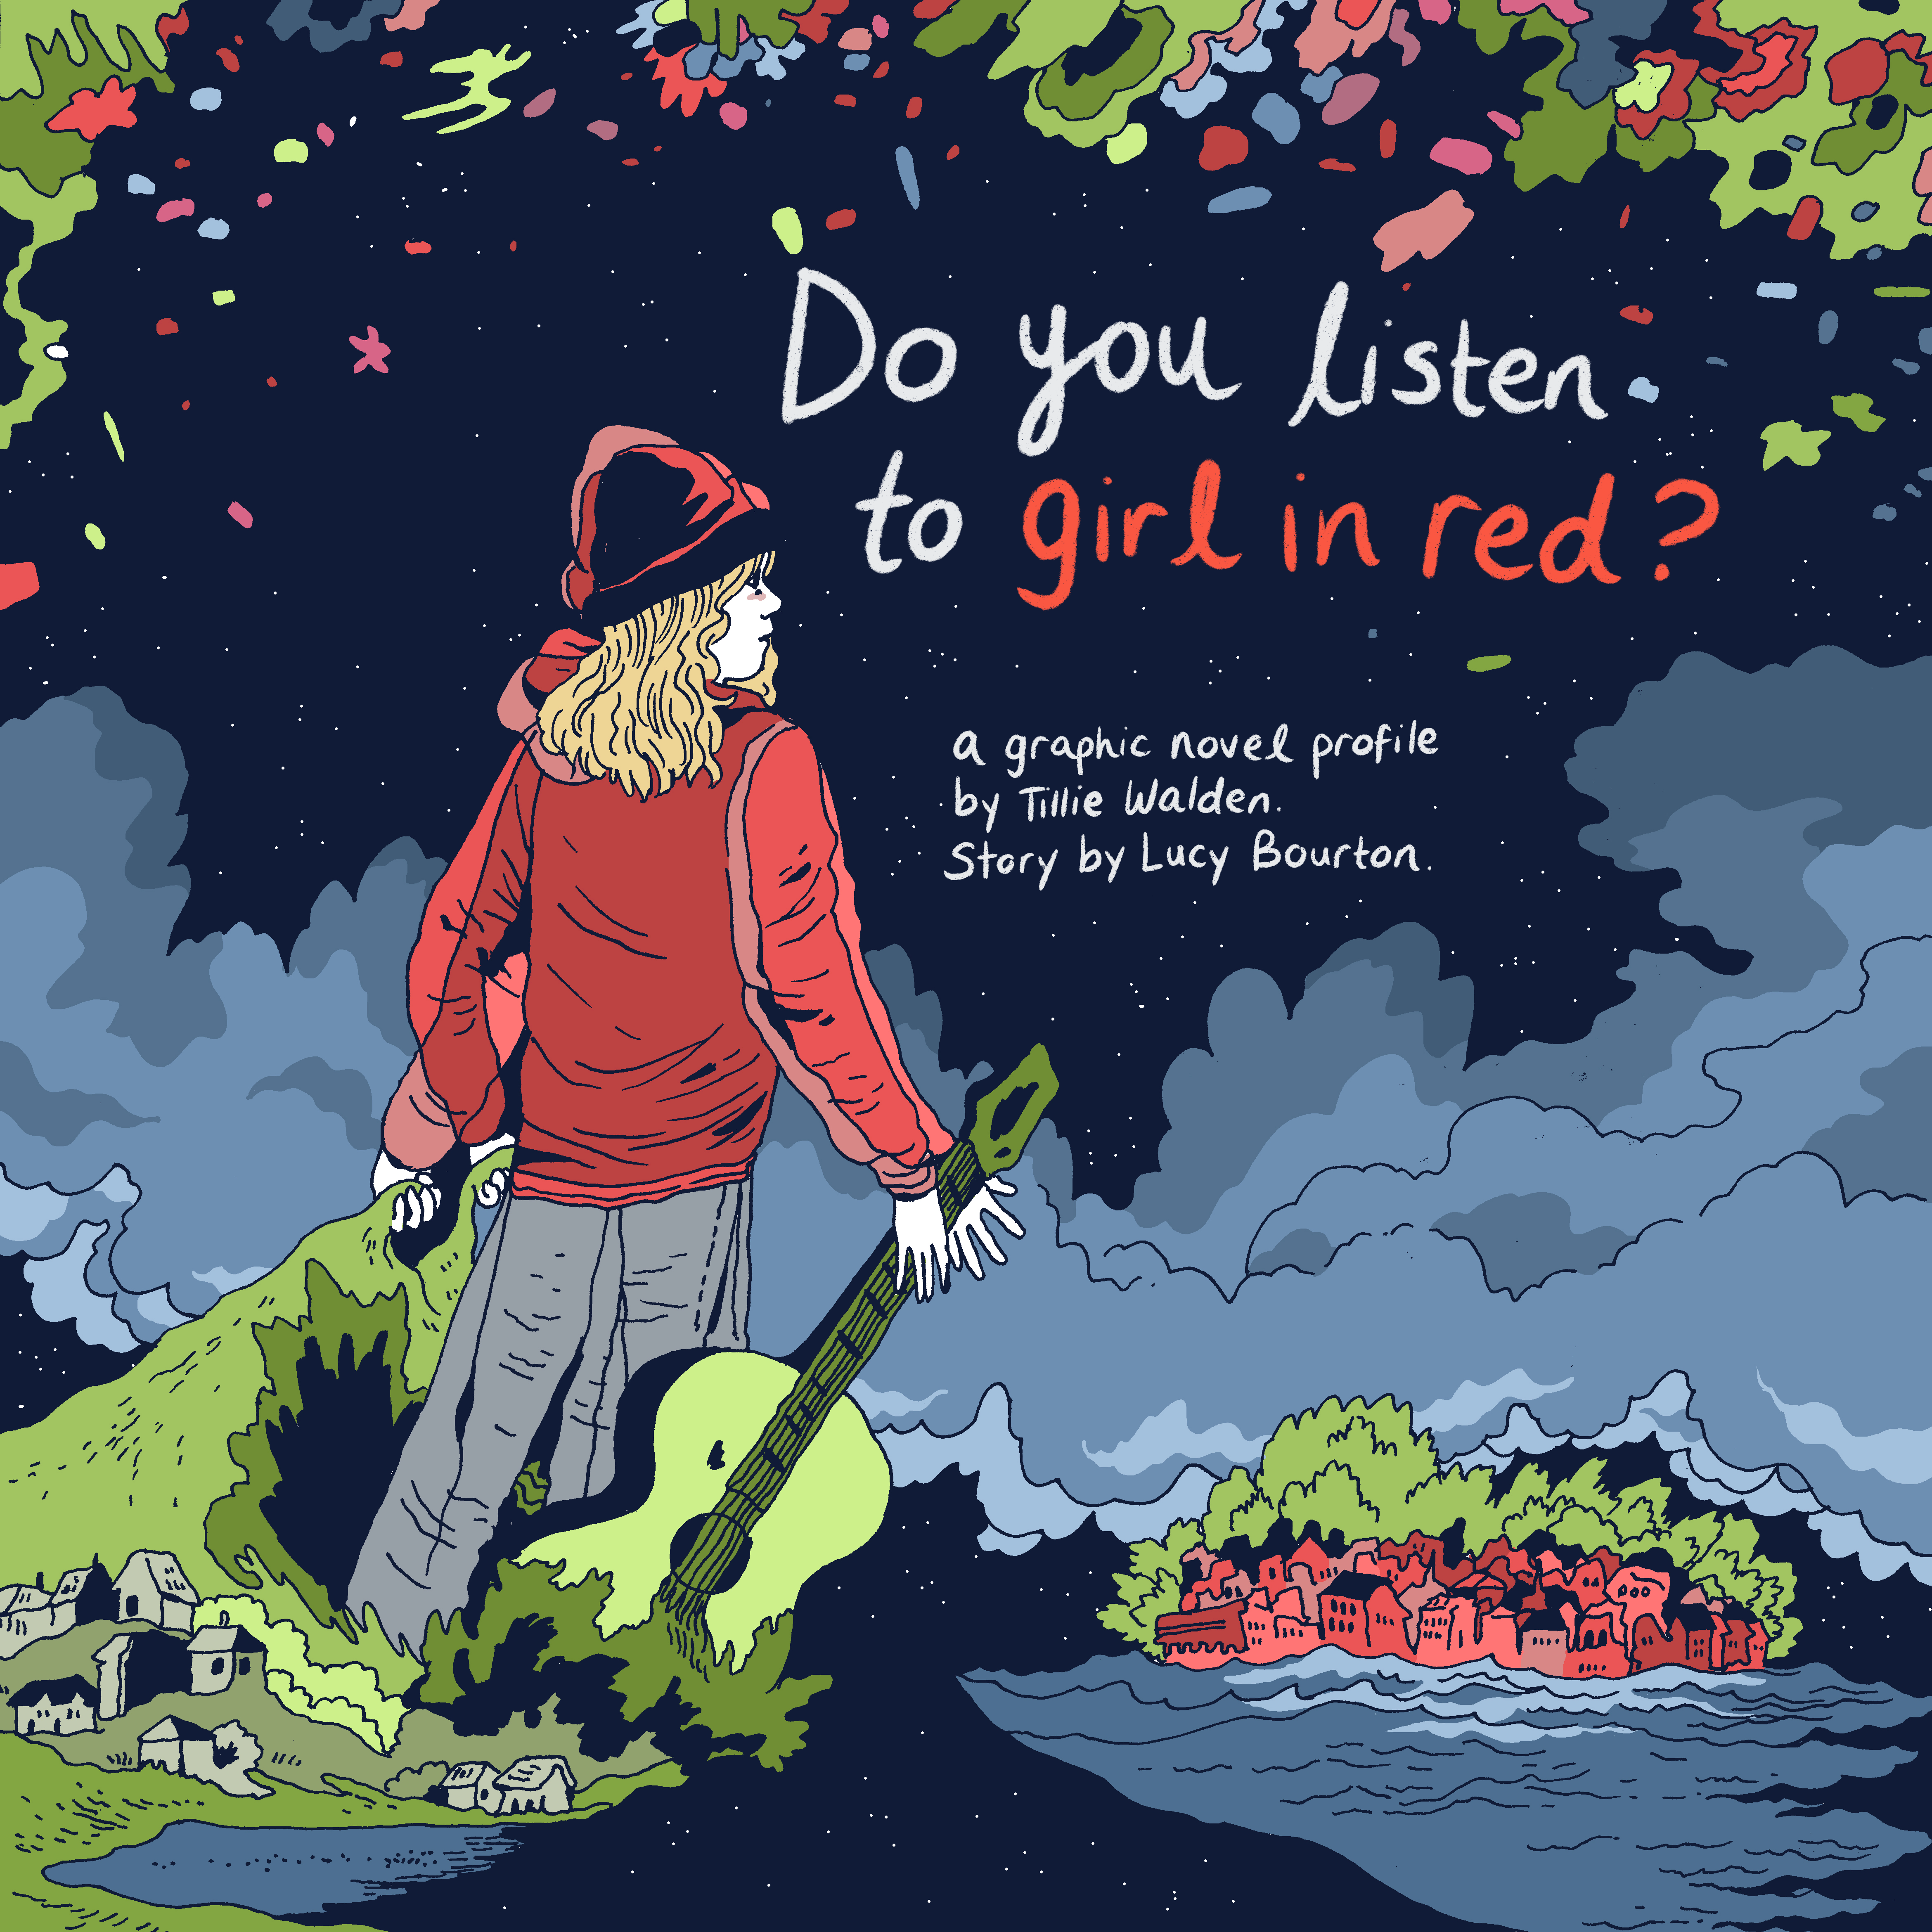 Cover artwork graphic novel Do you listen to girl in red_ illustrated by Tillie Walden (1).png